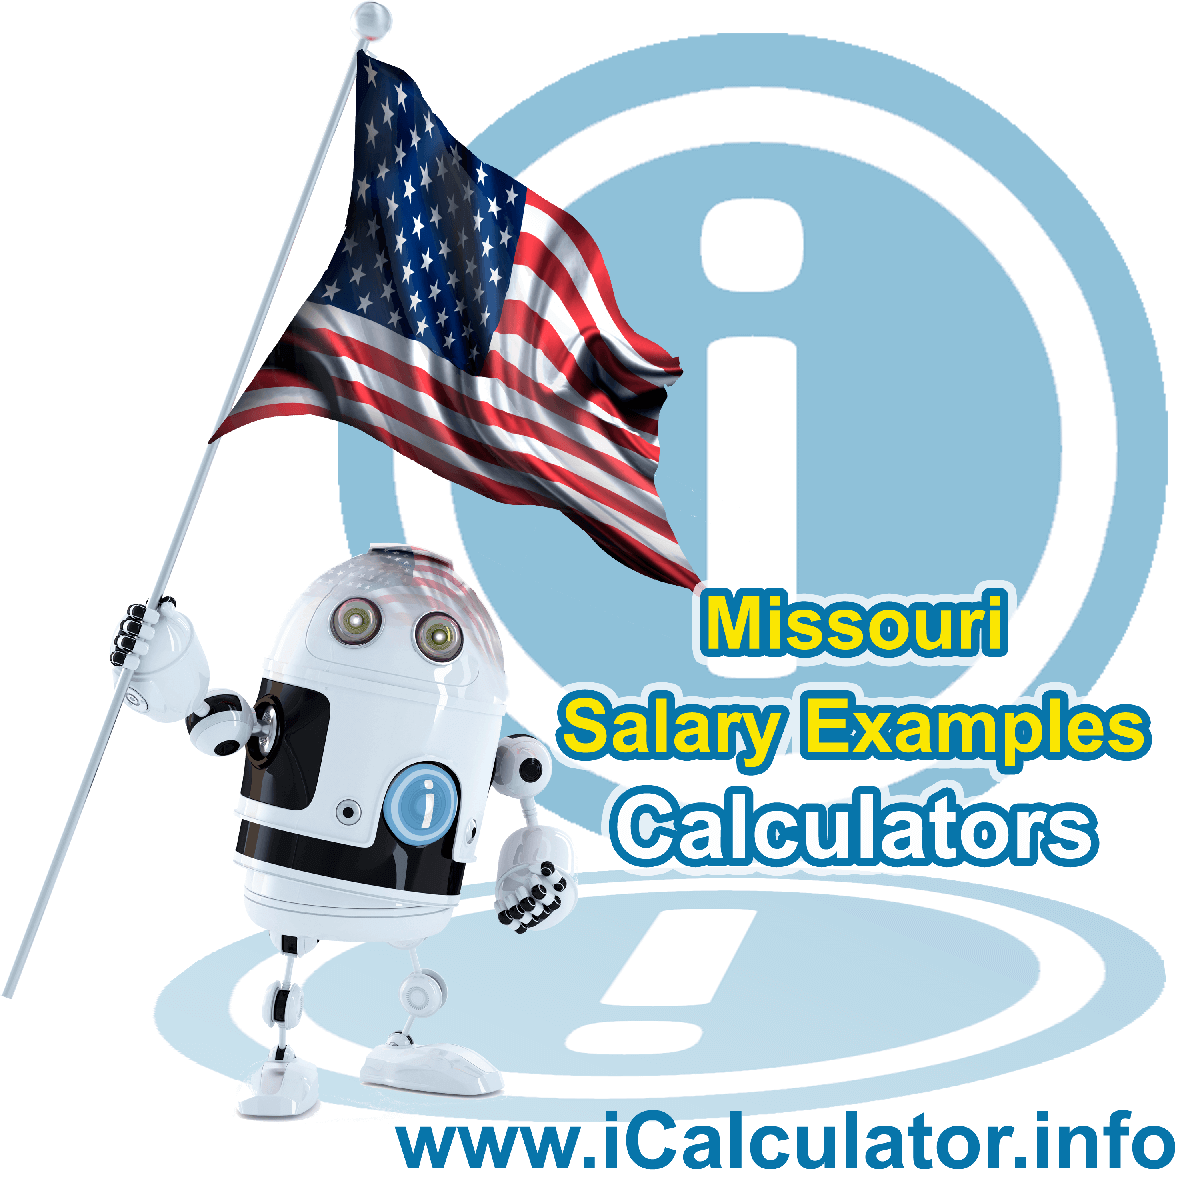 Missouri Salary Example for $60,000.00 in 2020 | iCalculator | $60,000.00 salary example for employee and employer paying Missouri State tincome taxes. Detailed salary after tax calculation including Missouri State Tax, Federal State Tax, Medicare Deductions, Social Security, Capital Gains and other income tax and salary deductions complete with supporting Missouri state tax tables